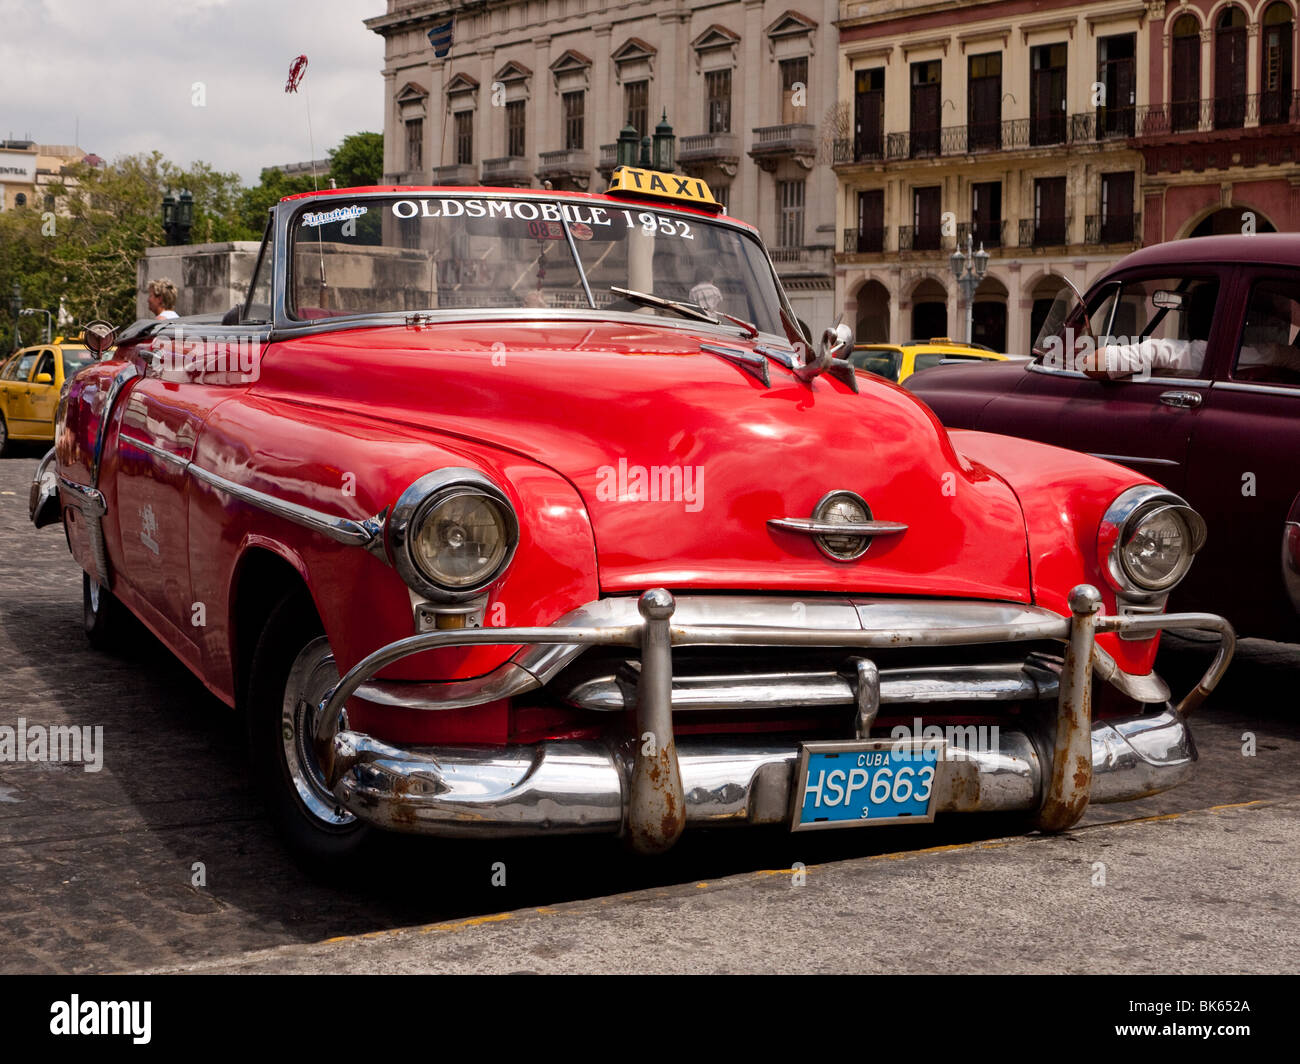 1950 american cars stock photos 1950 american cars stock images alamy. Black Bedroom Furniture Sets. Home Design Ideas